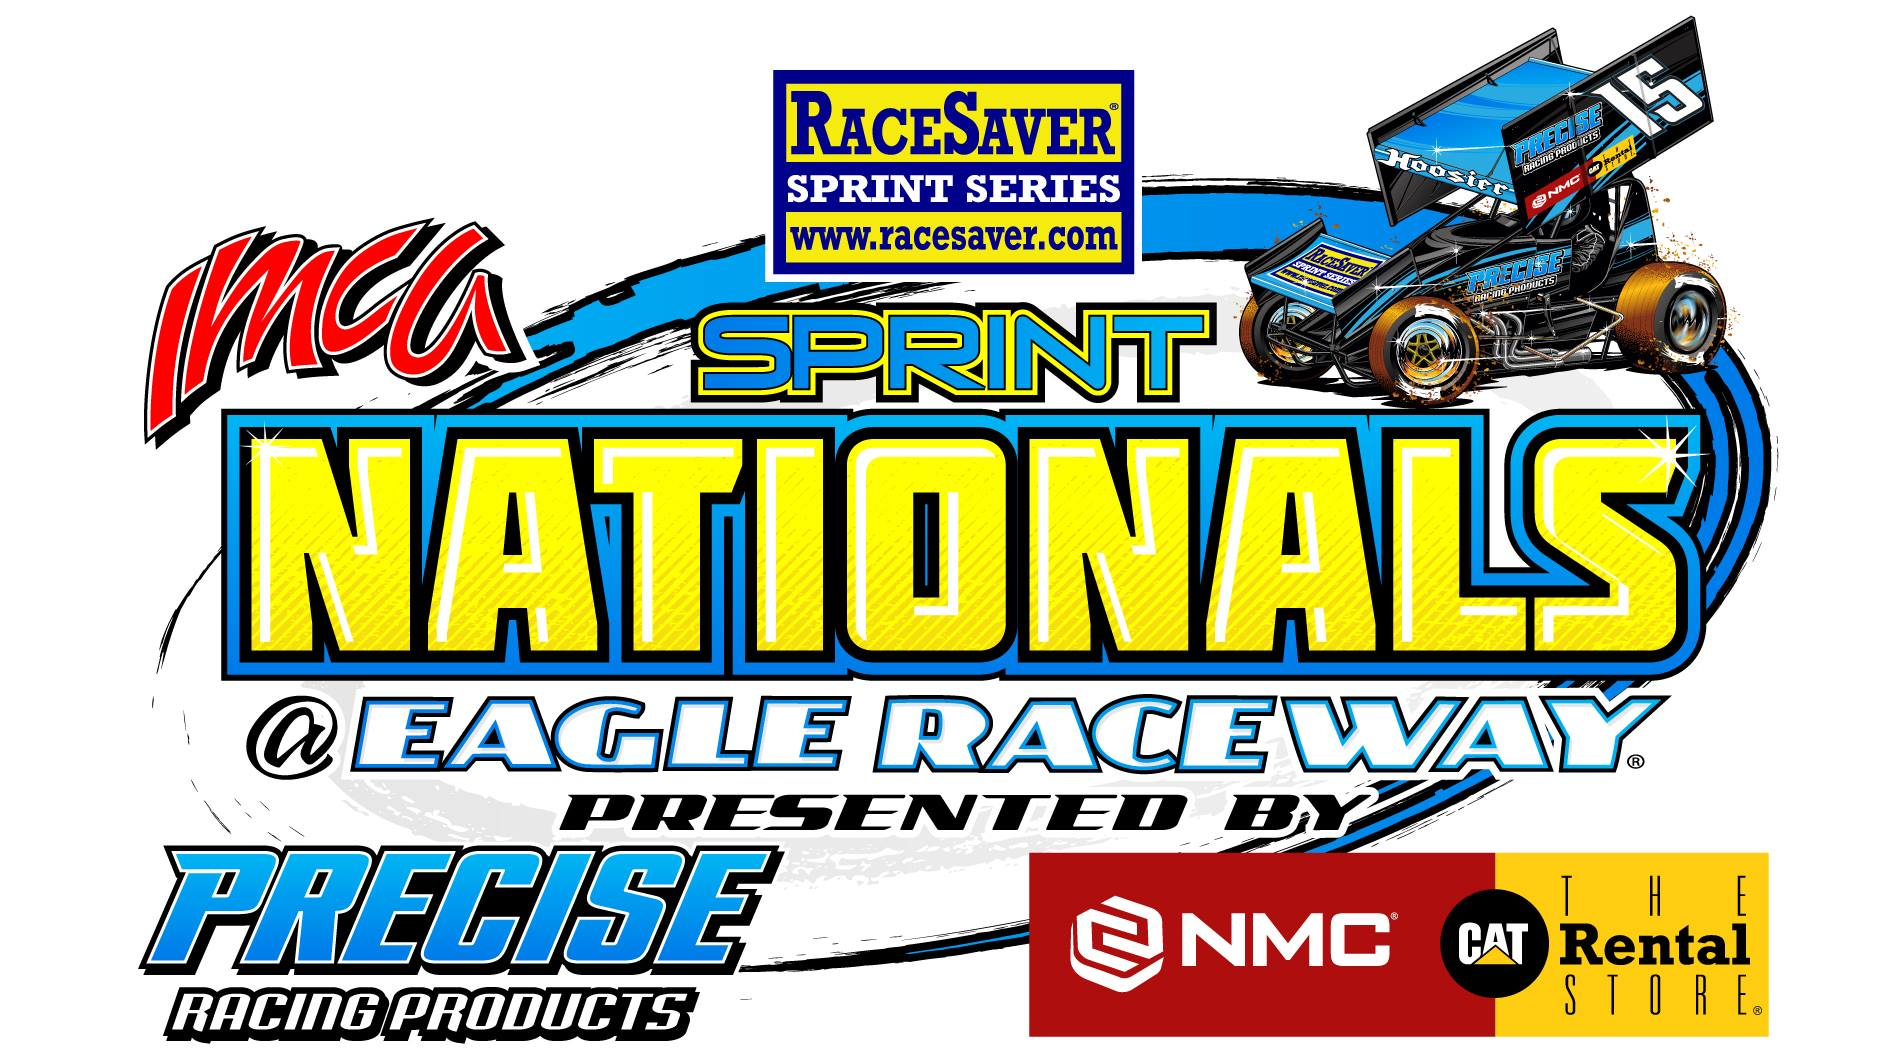 Partial Big Dance Lineup & Points for Last Chance Race Lineups for Nationals